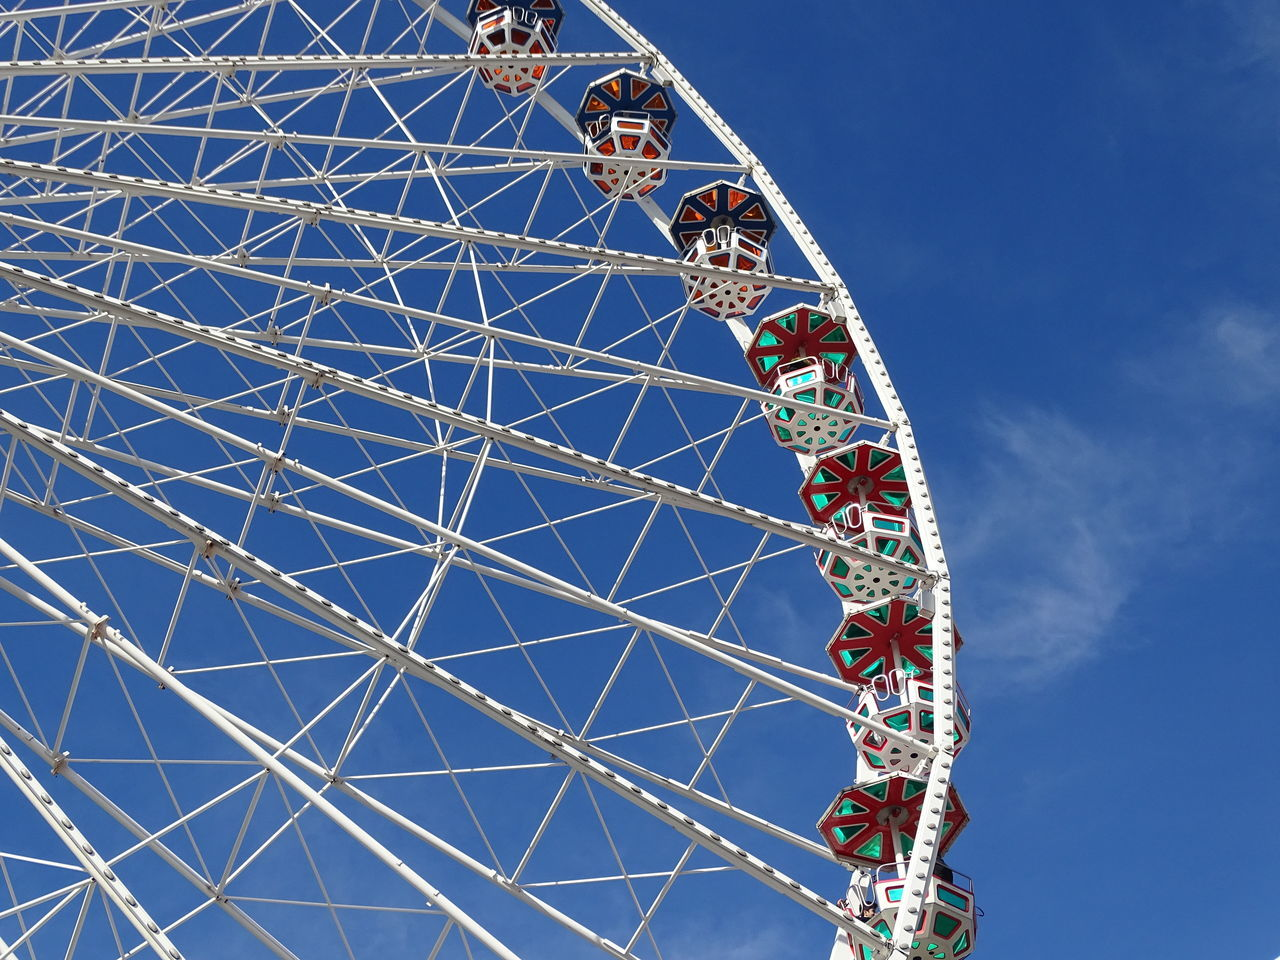 """A ferris wheel from below in the amusement park """"Prater"""" in Vienna Amusement Park Amusement Park Ride Attraction Big Wheel Blue Built Structure Carneval Clear Sky Day Entertainment Ferris Wheel Fun Fun Park Large Leisure Activity Low Angle View Metal Outdoors Park Prater Rotation Sky Vienna White Carnival Crowds And Details"""